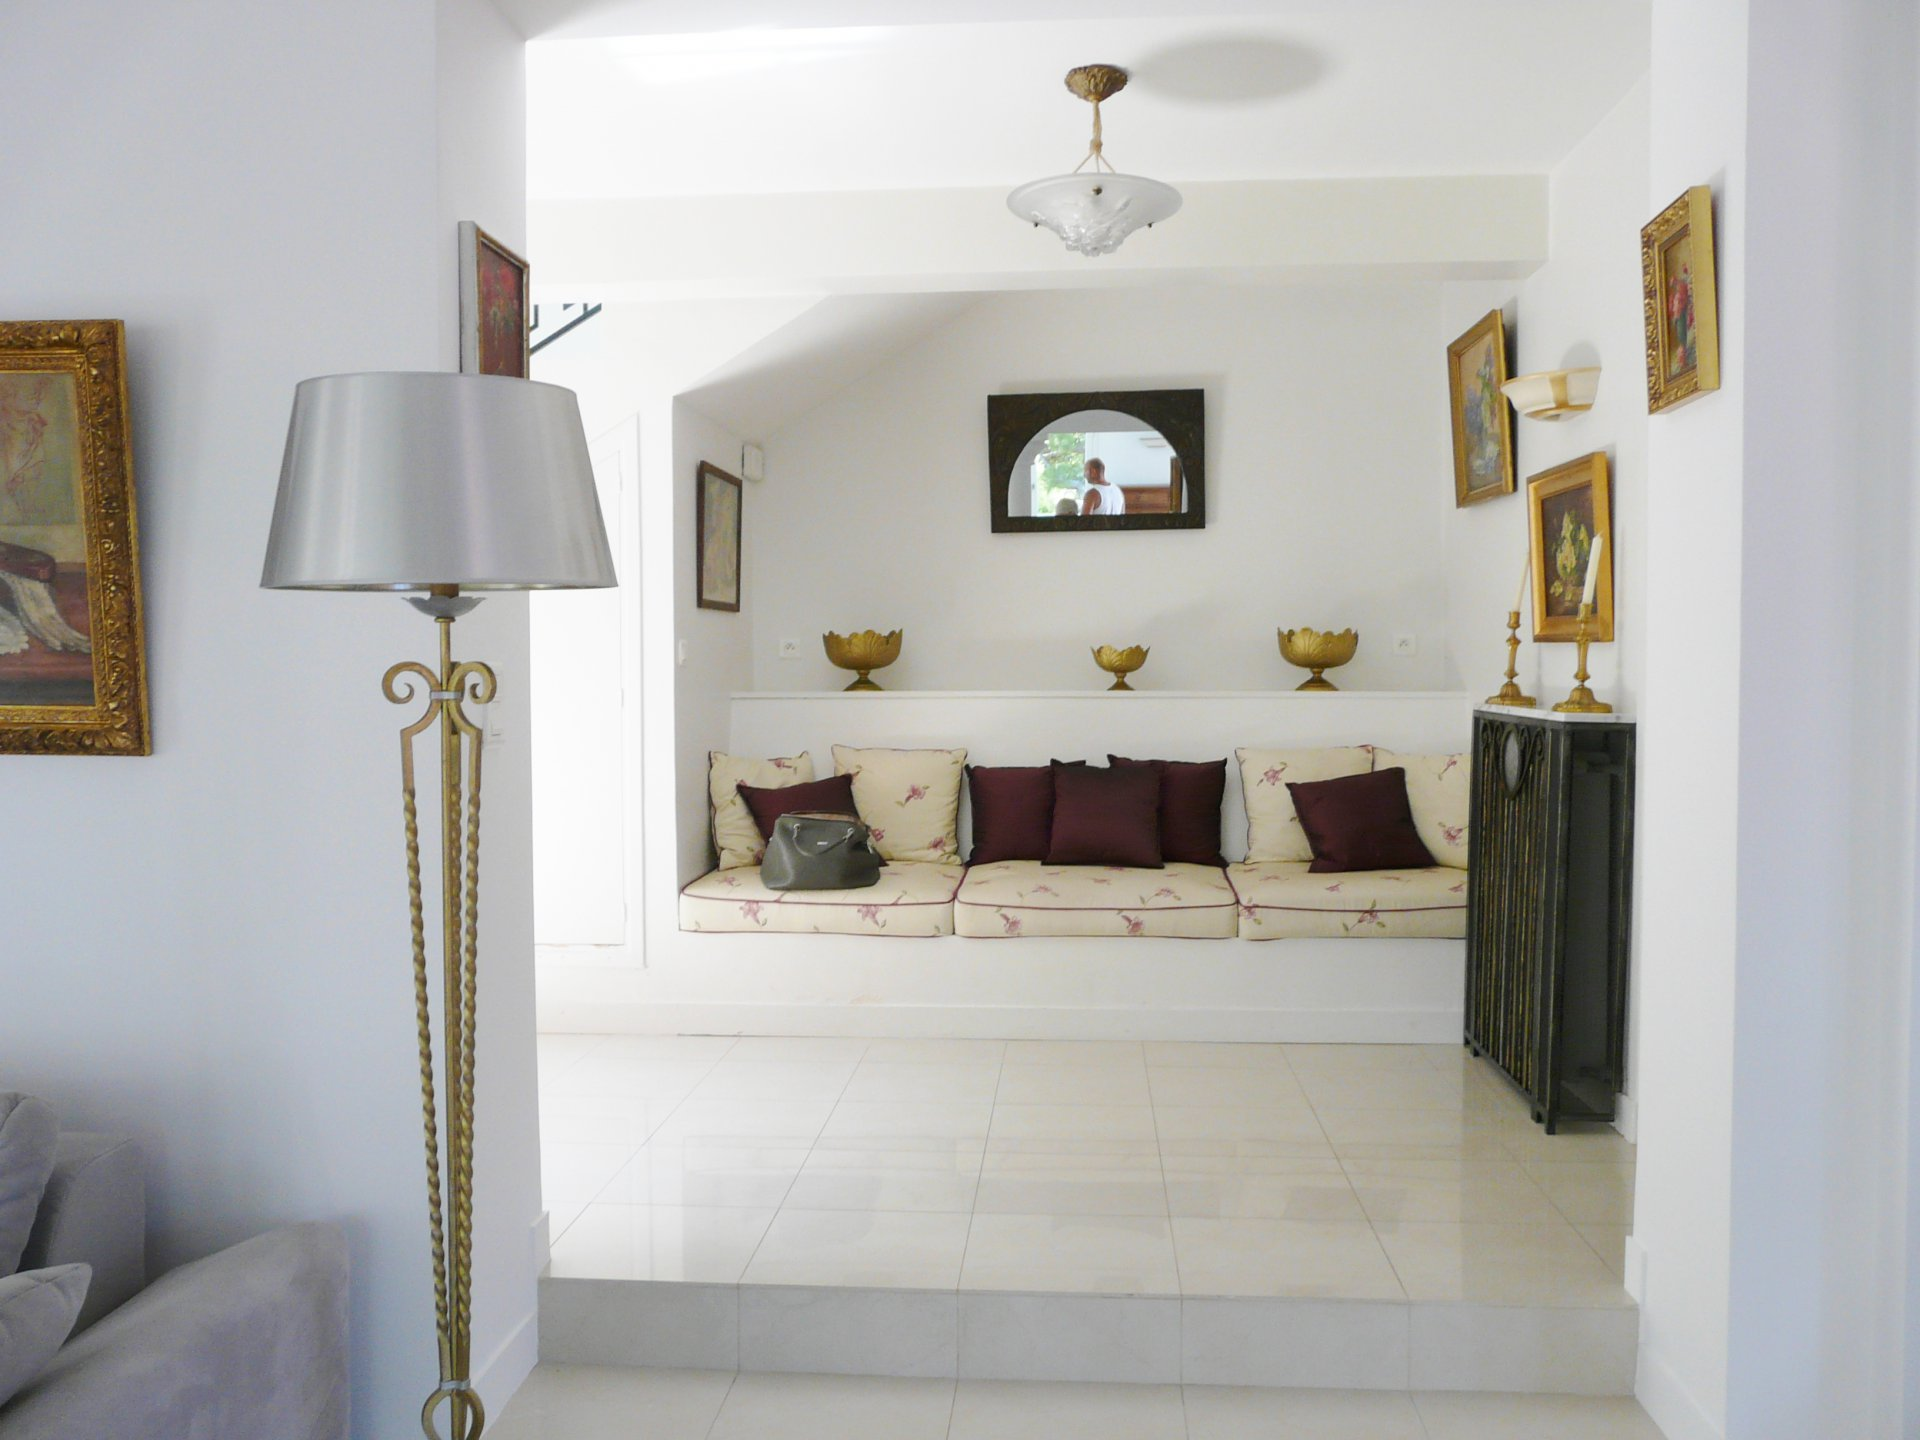 BEAUTIFUL VILLA A FEW MINUTES AWAY FROM  BEACHES